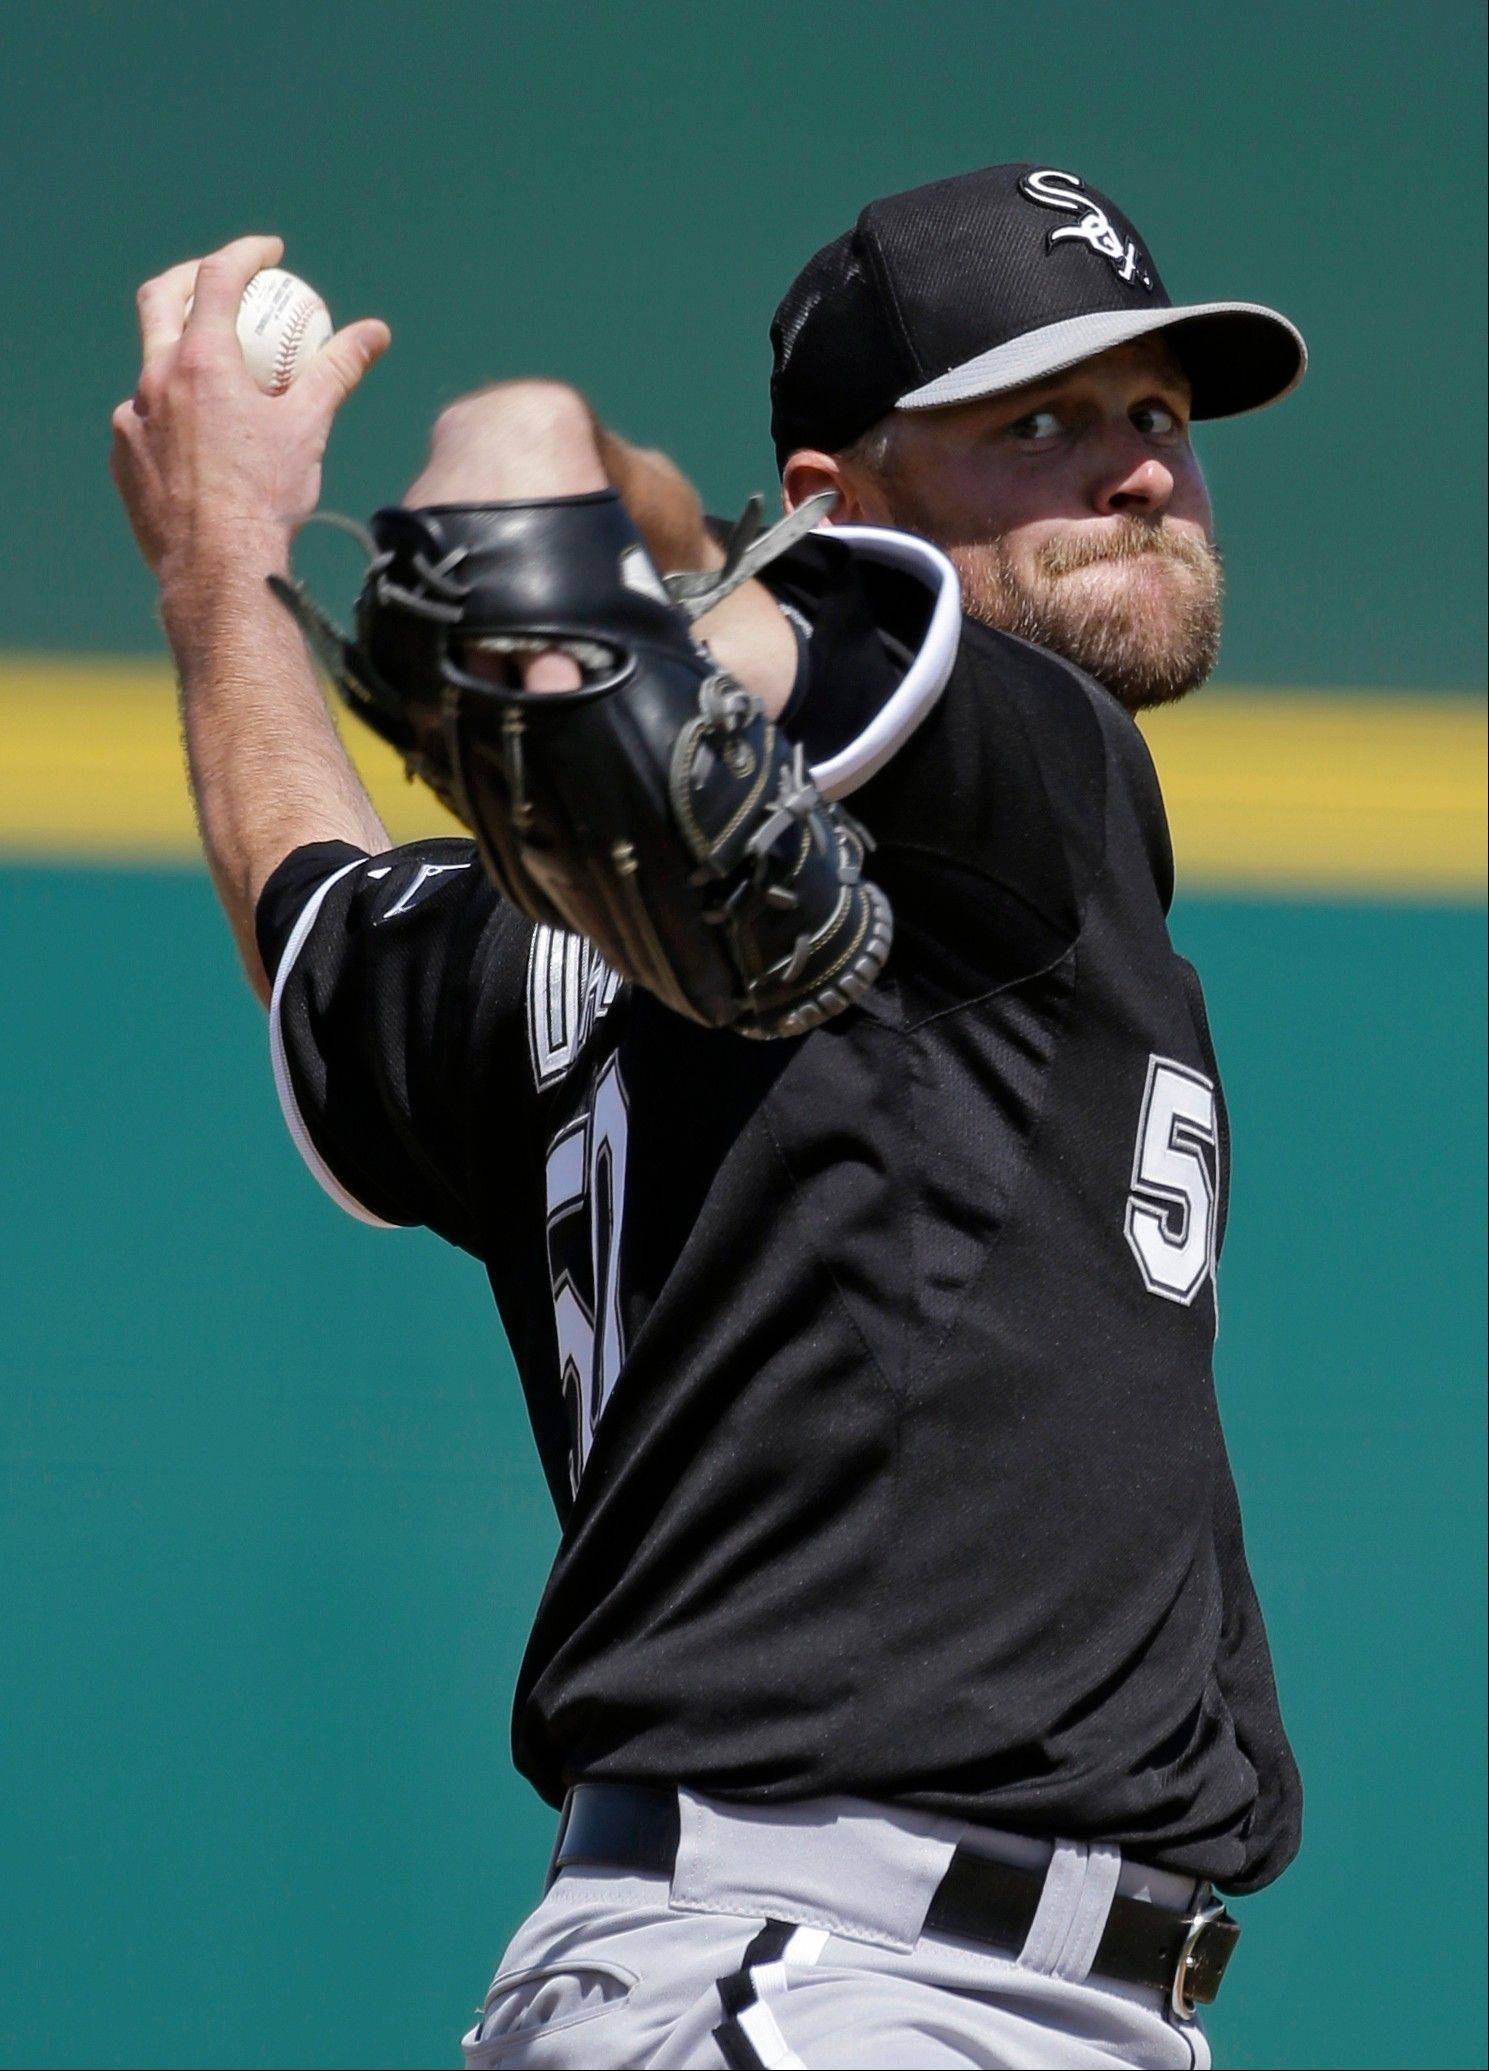 Chicago White Sox starting pitcher John Danks delivers against the Cincinnati Reds in the first inning of a spring training baseball game Tuesday, March 19, 2013, in Goodyear, Ariz.